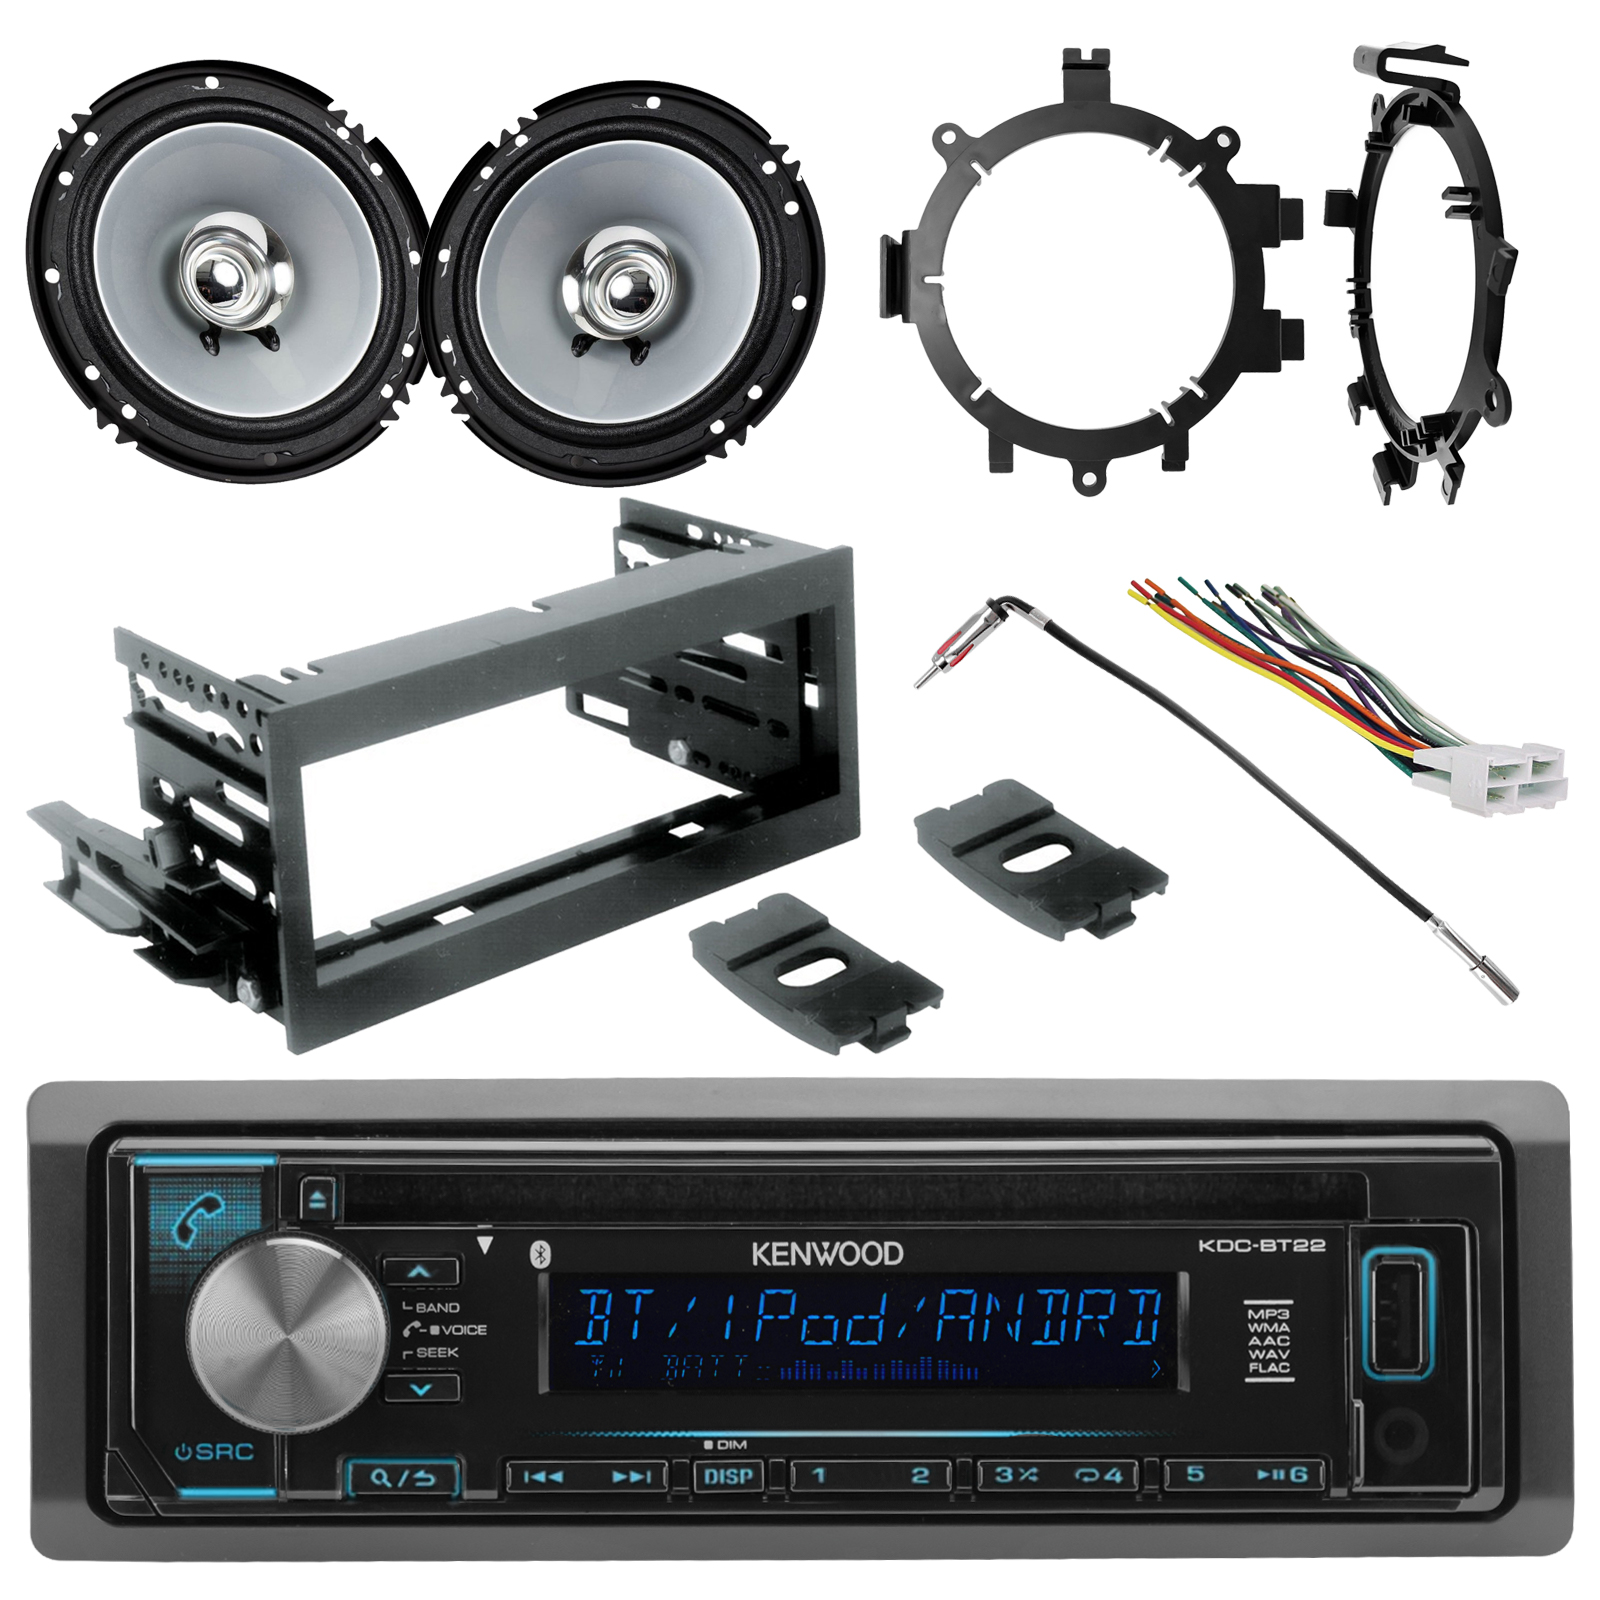 radio wiring diagram for 1995 chevy silverado a two way dimmer switch gm stereo wires kenwood single din aux usb am fm cd bluetooth 2x 6 5 sport